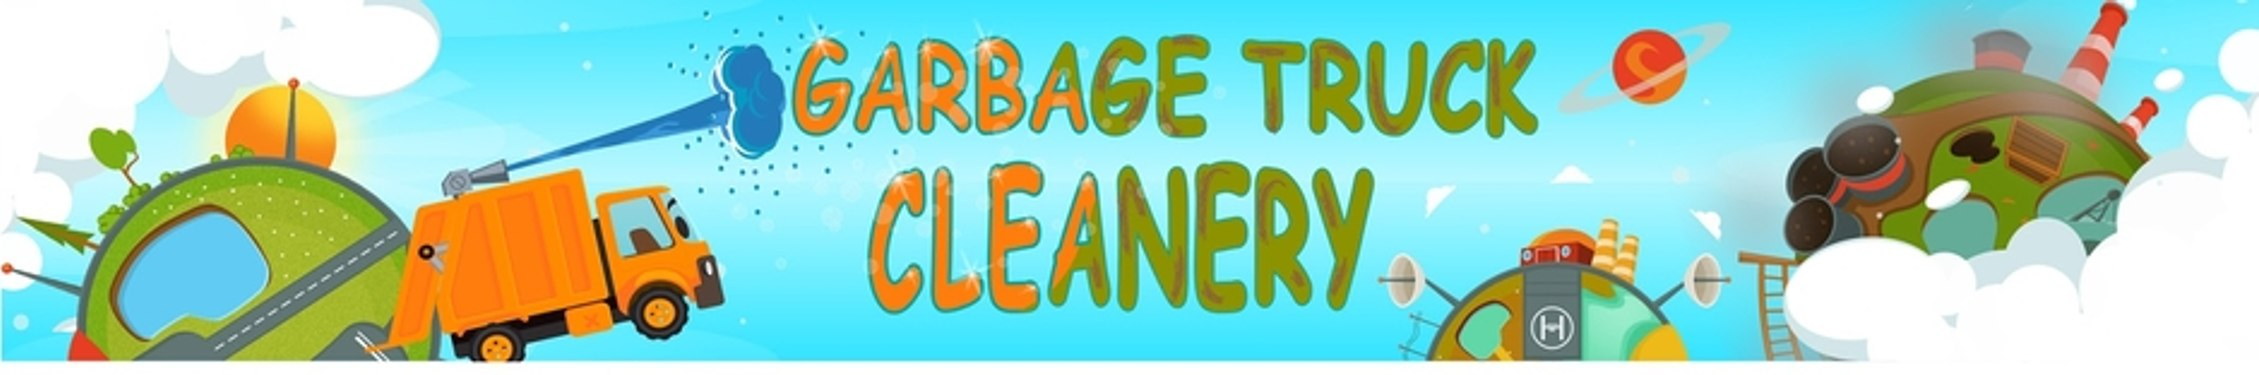 Garbage Truck Cleanery